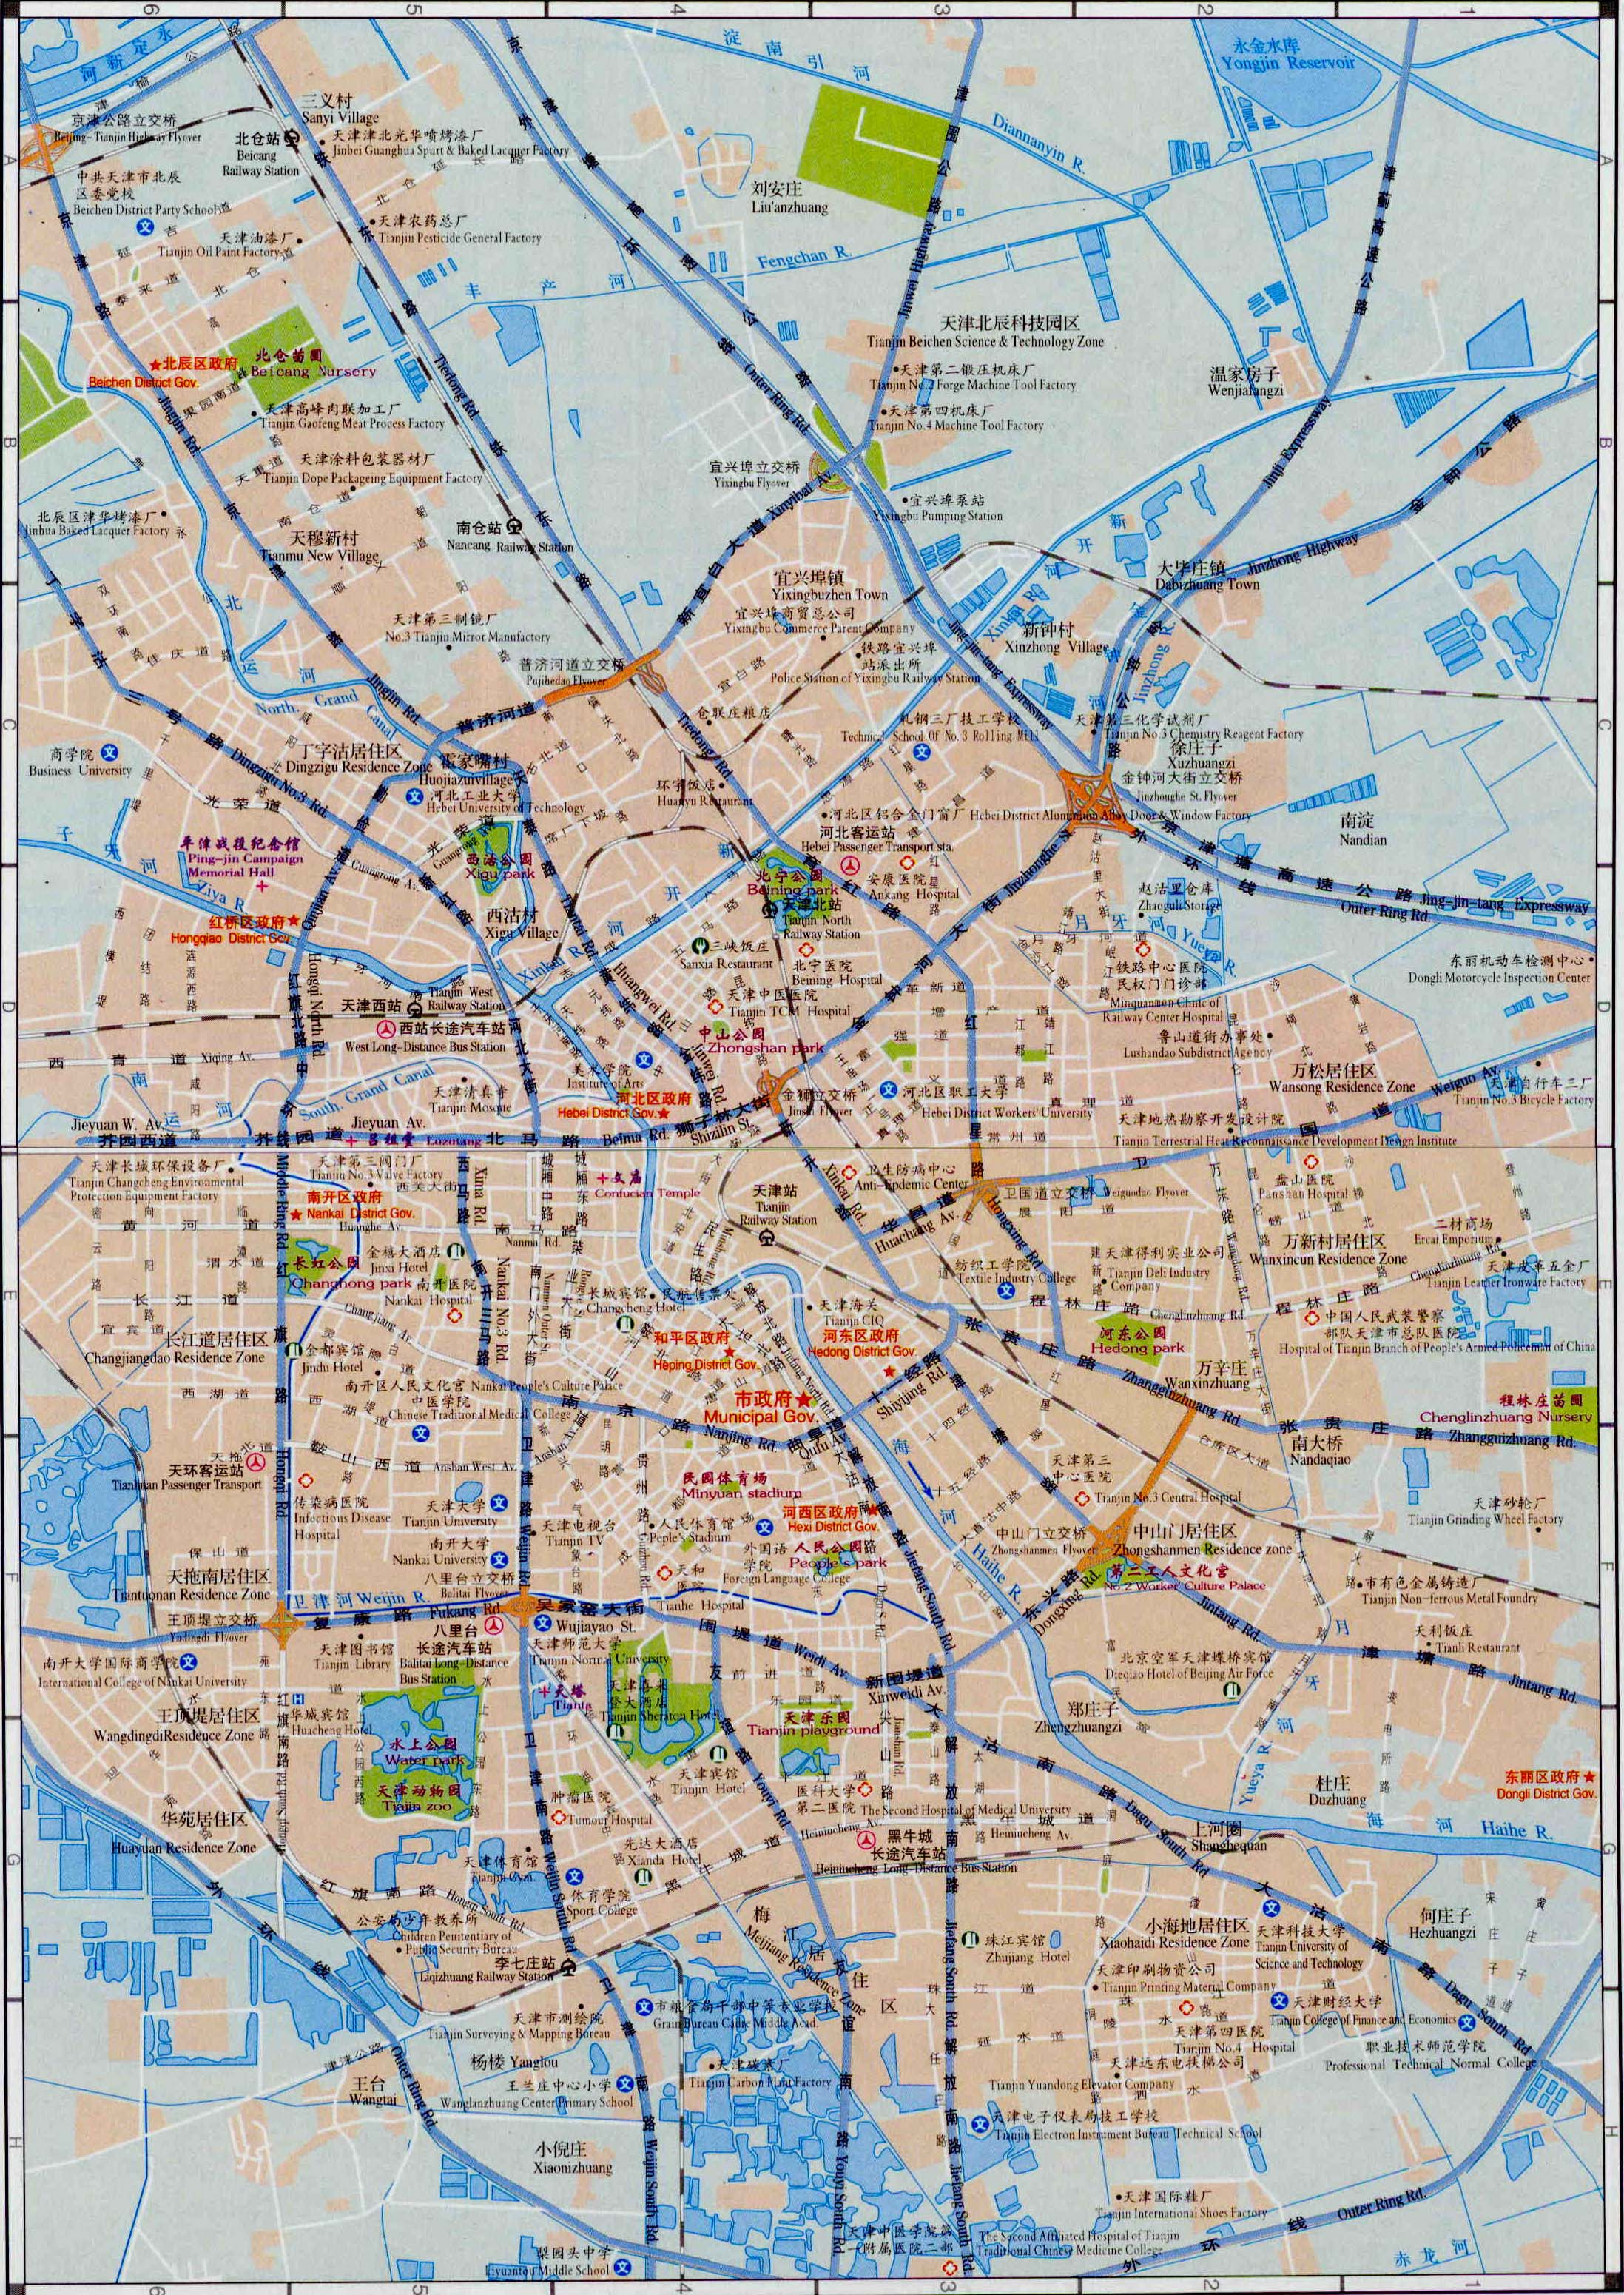 Bilingual chinese english map of tianjin tianjin tour tours in bilingual chinese english map of tianjin gumiabroncs Image collections